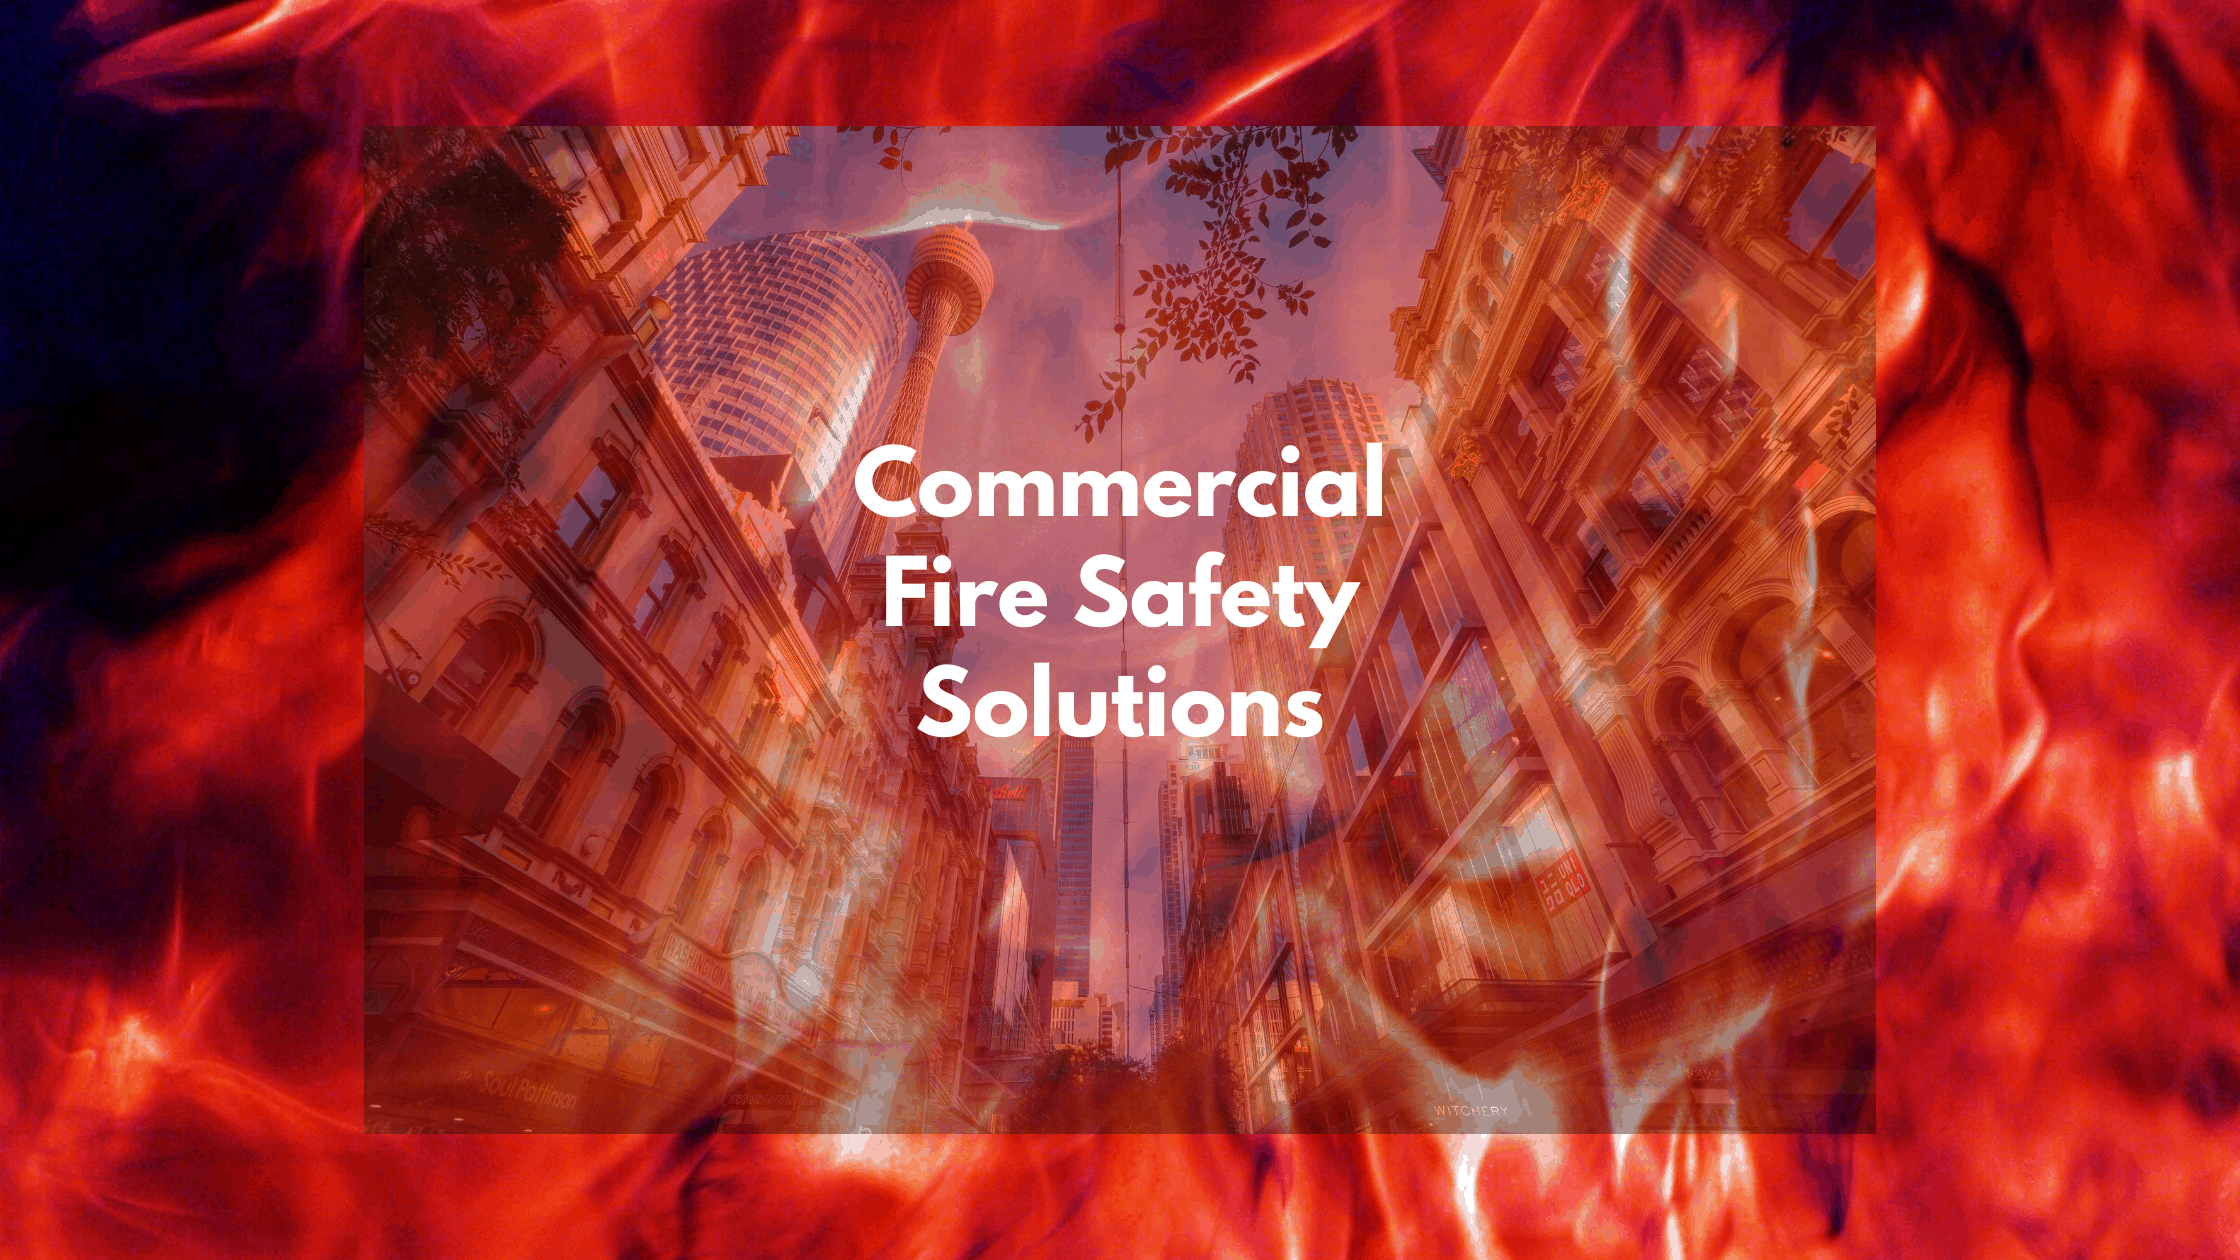 Commercial Fire Safety Solutions for Your Business